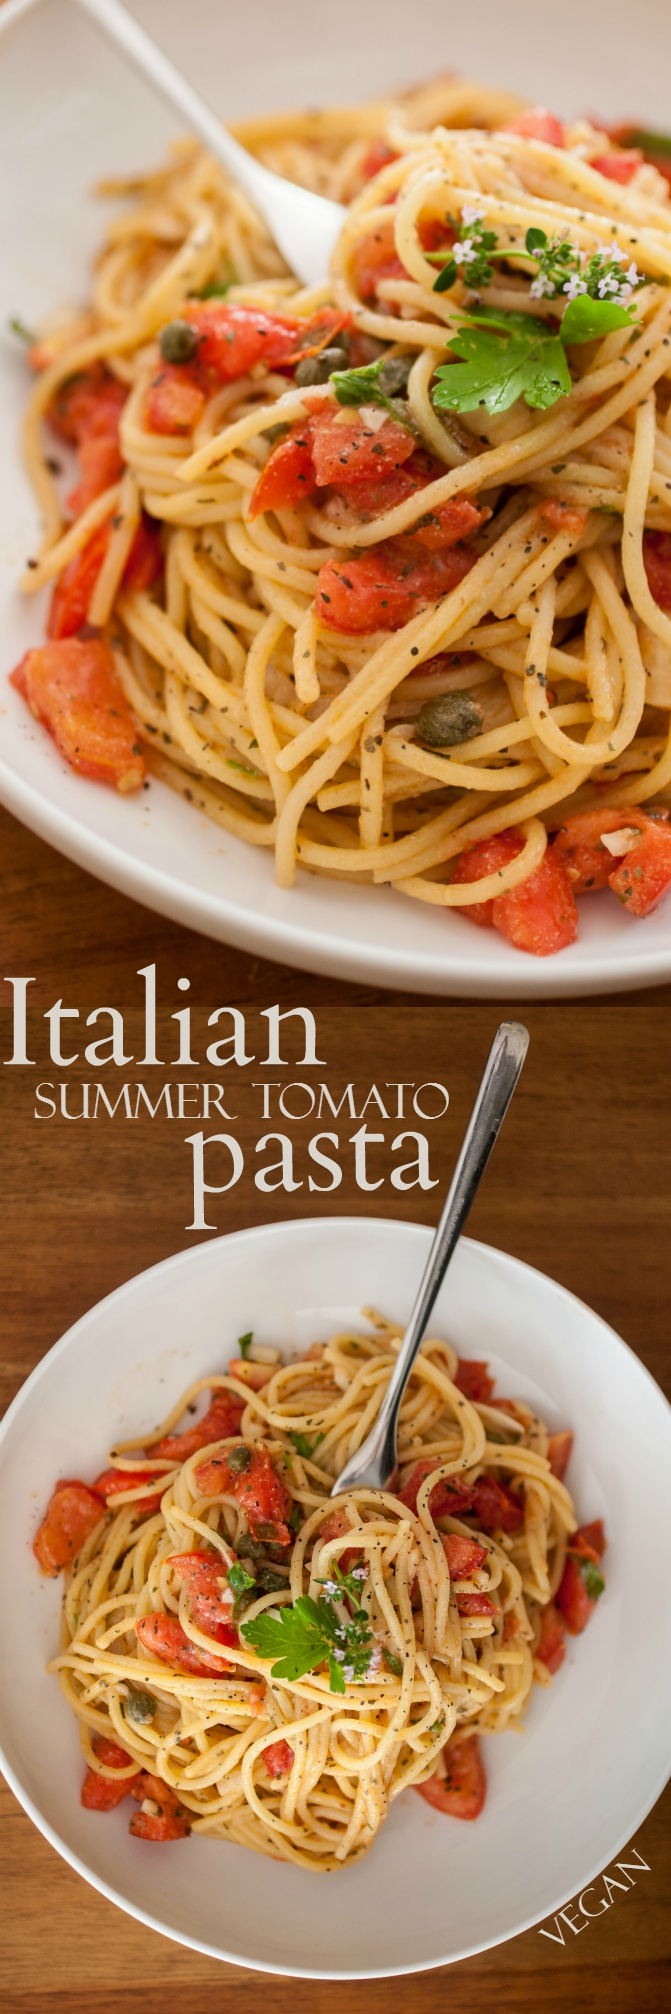 Produce On Parade - Italian Summer Tomato Pasta - This is a quick and easy pasta that's a great way to utilize those garden-fresh tomatoes from the summer harvest! The noodles are tossed in a homemade Italian dressing with briny capers and fresh herbs. Dinner is on the table in the time it takes to boil water and cook the noodles!